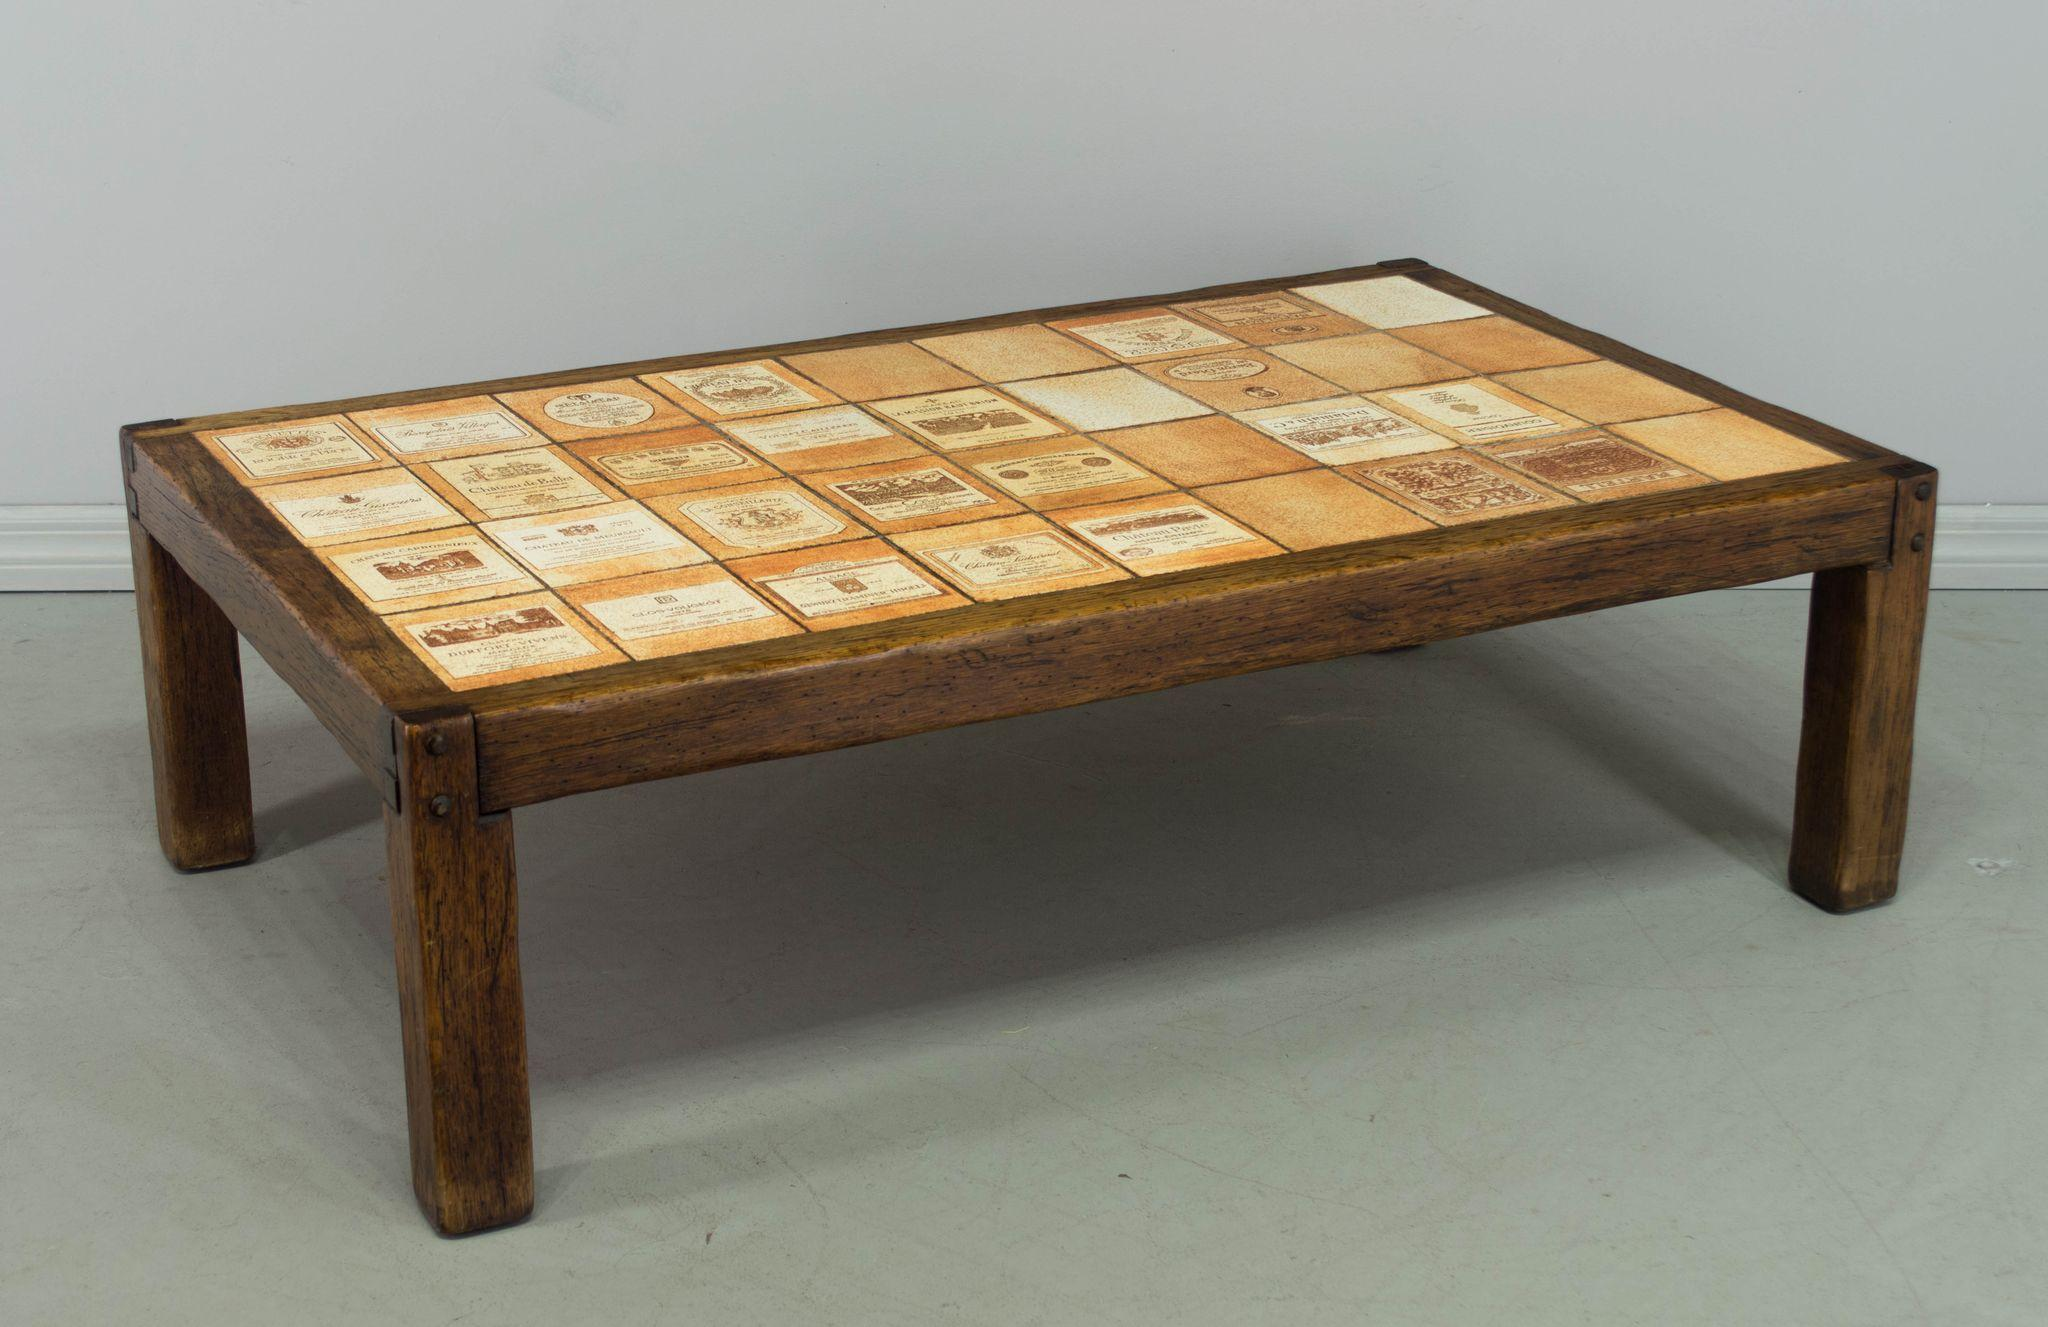 Roger Capron Wine Label Coffee Table from ofleury on Ruby Lane